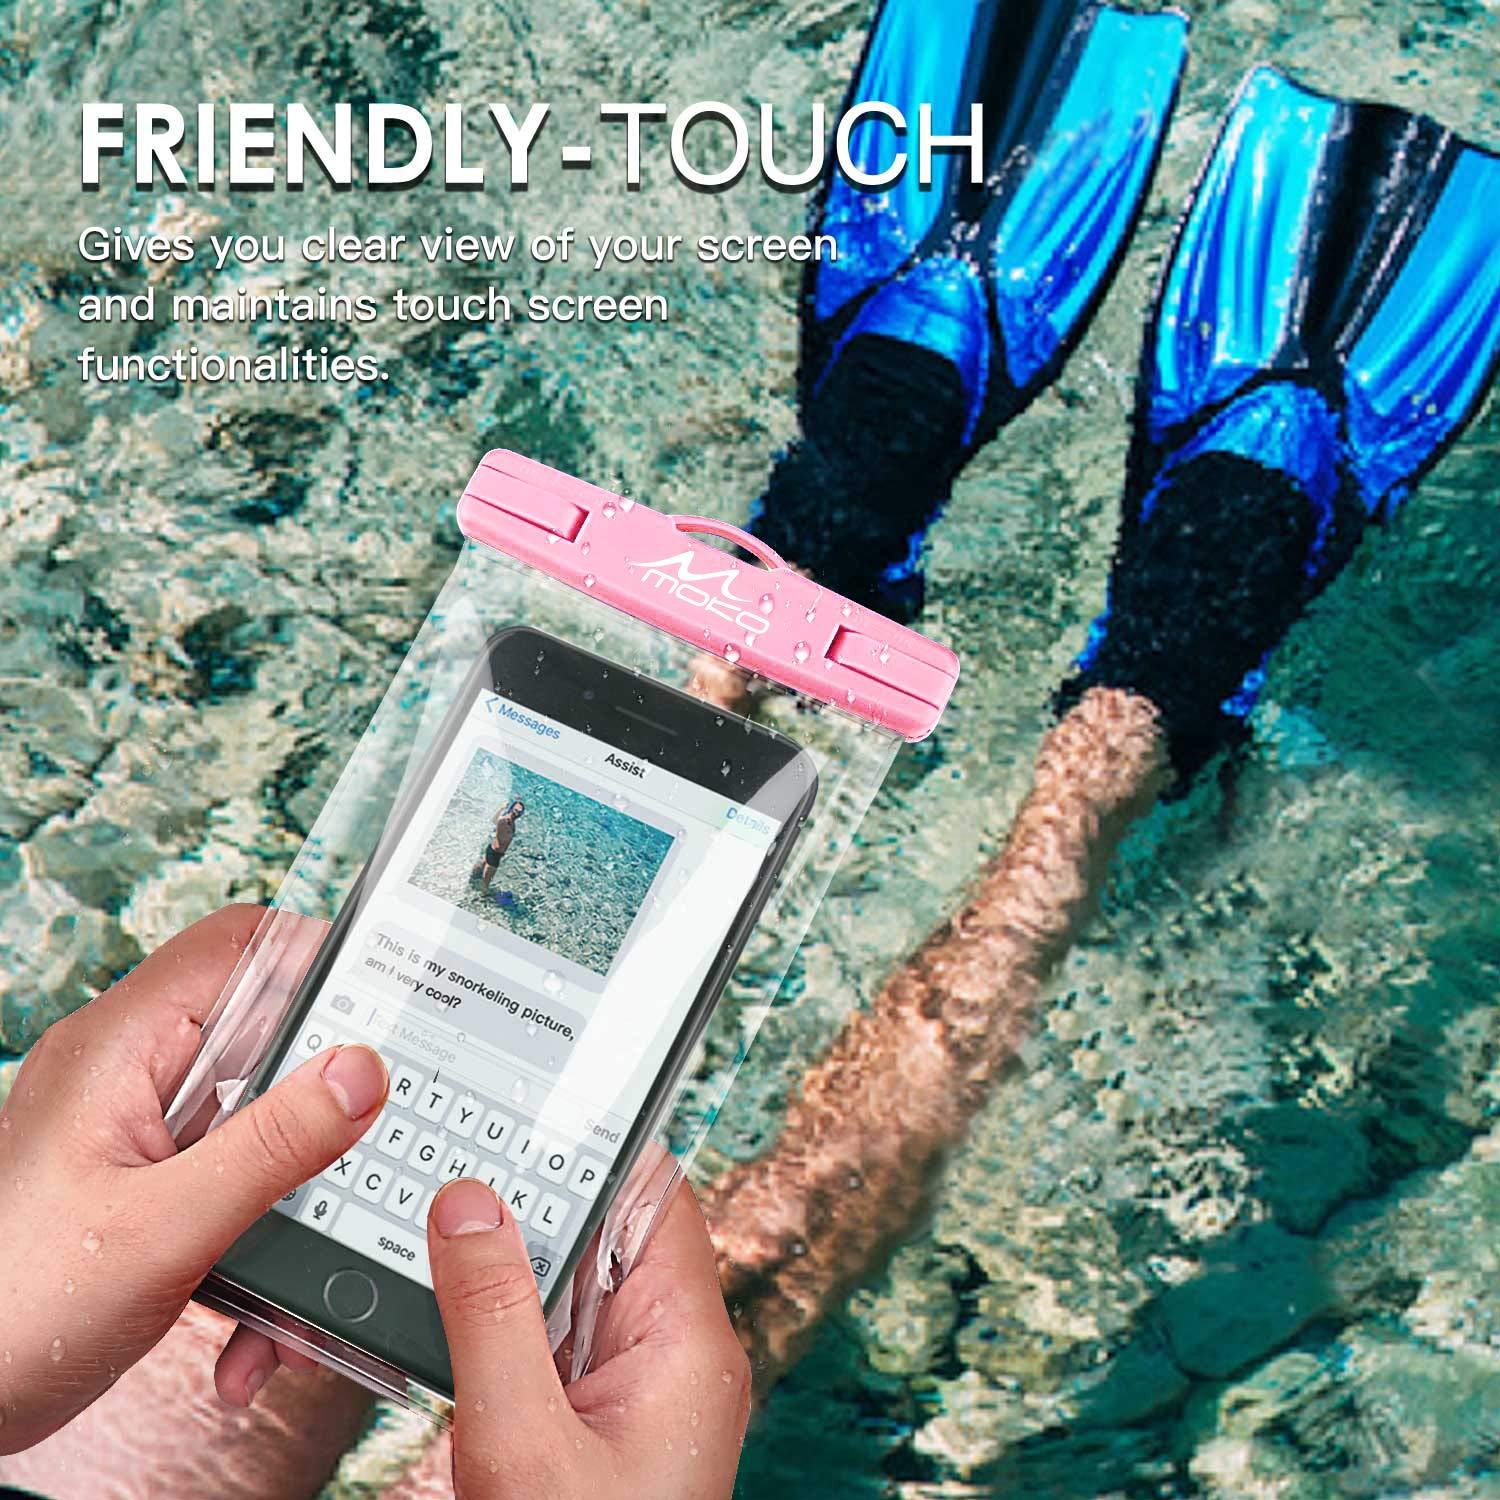 Underwater Waterproof Cellphone Case Dry Bag with Lanyard /& Armband Compatible with iPhone X//Xs//Xr//Xs Max MoKo Waterproof Phone Pouch 8//7//6s Plus Samsung S10//S9//S8 Plus 2 Pack S10 e Up to 6.5